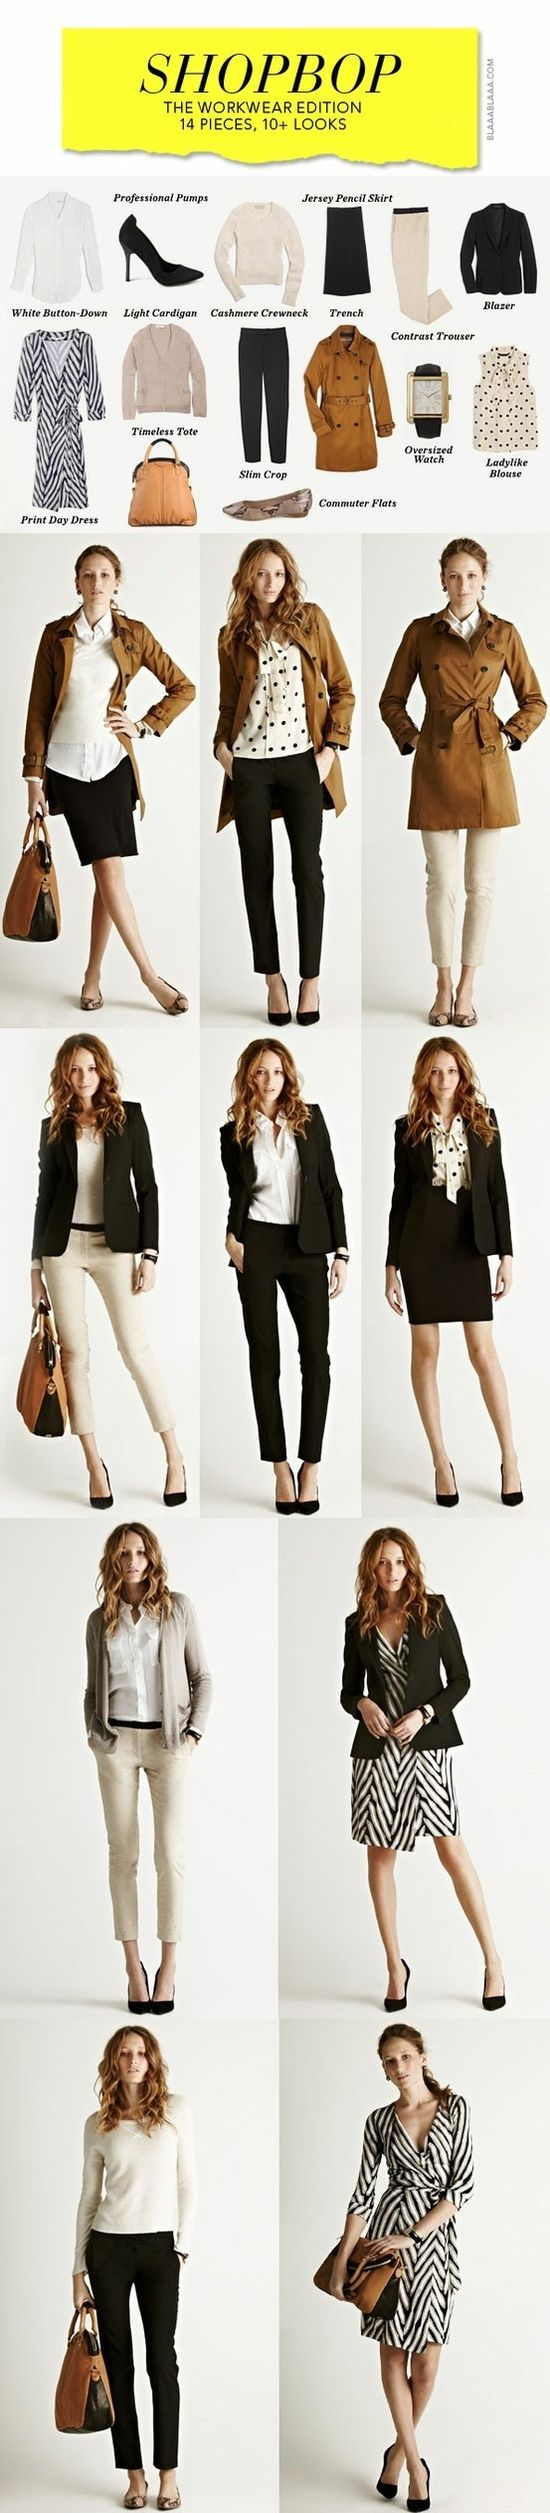 14 pieces, 10+ looks  interview, work, professional   add a pair of dark jeans for more looks